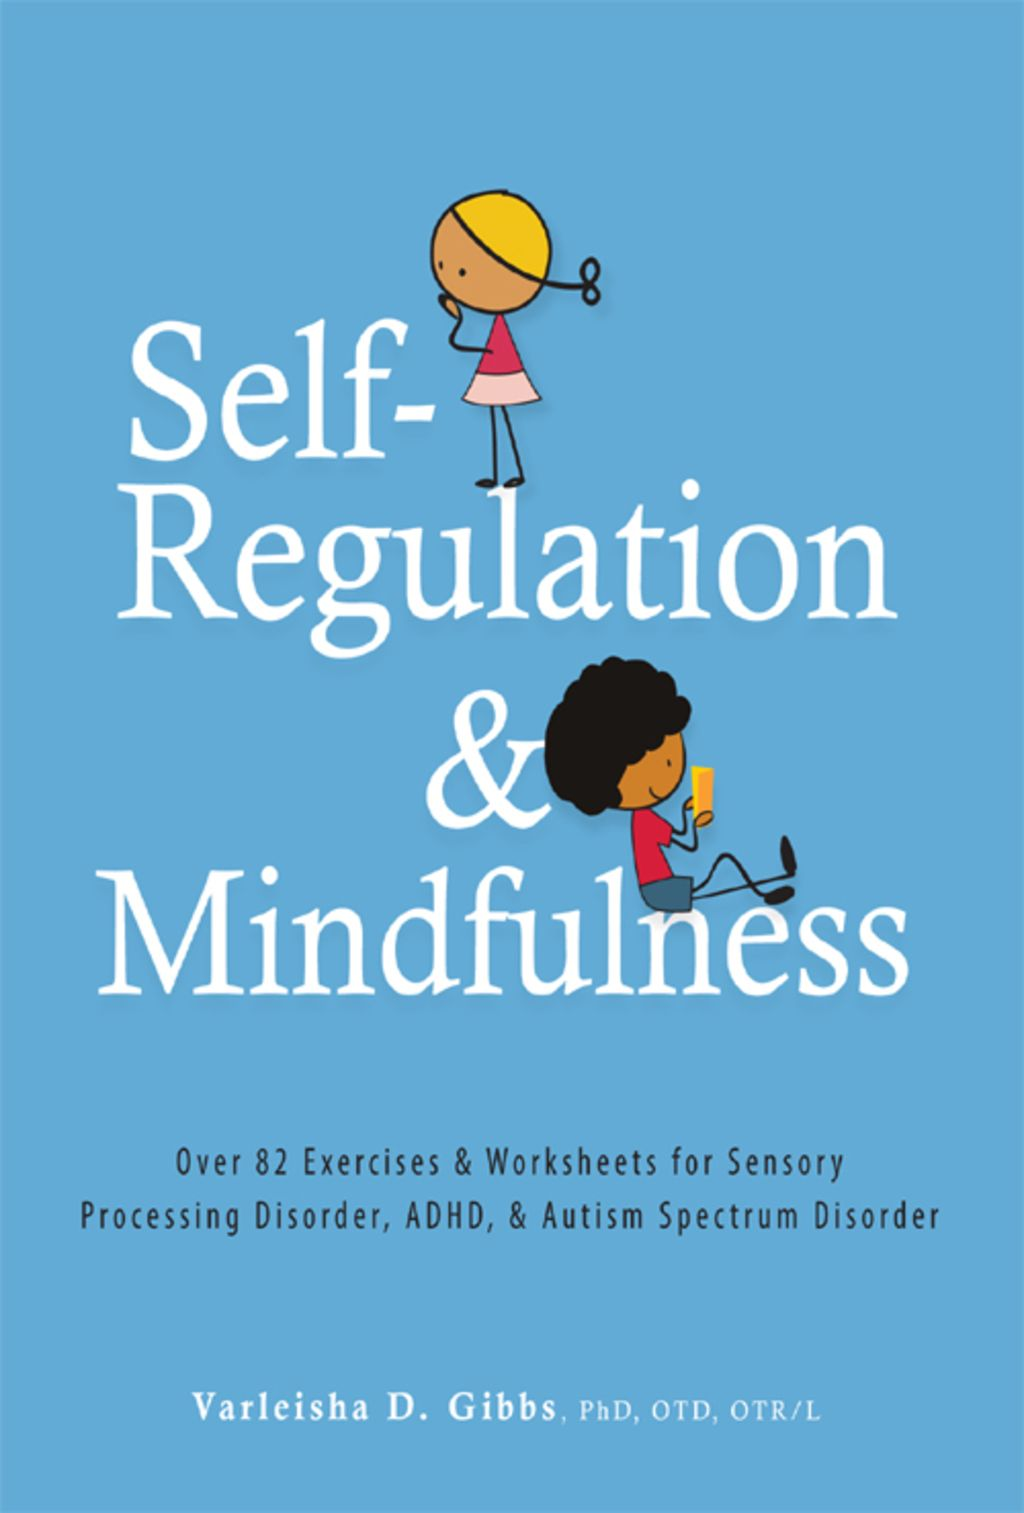 Self Regulation And Mindfulness Ebook